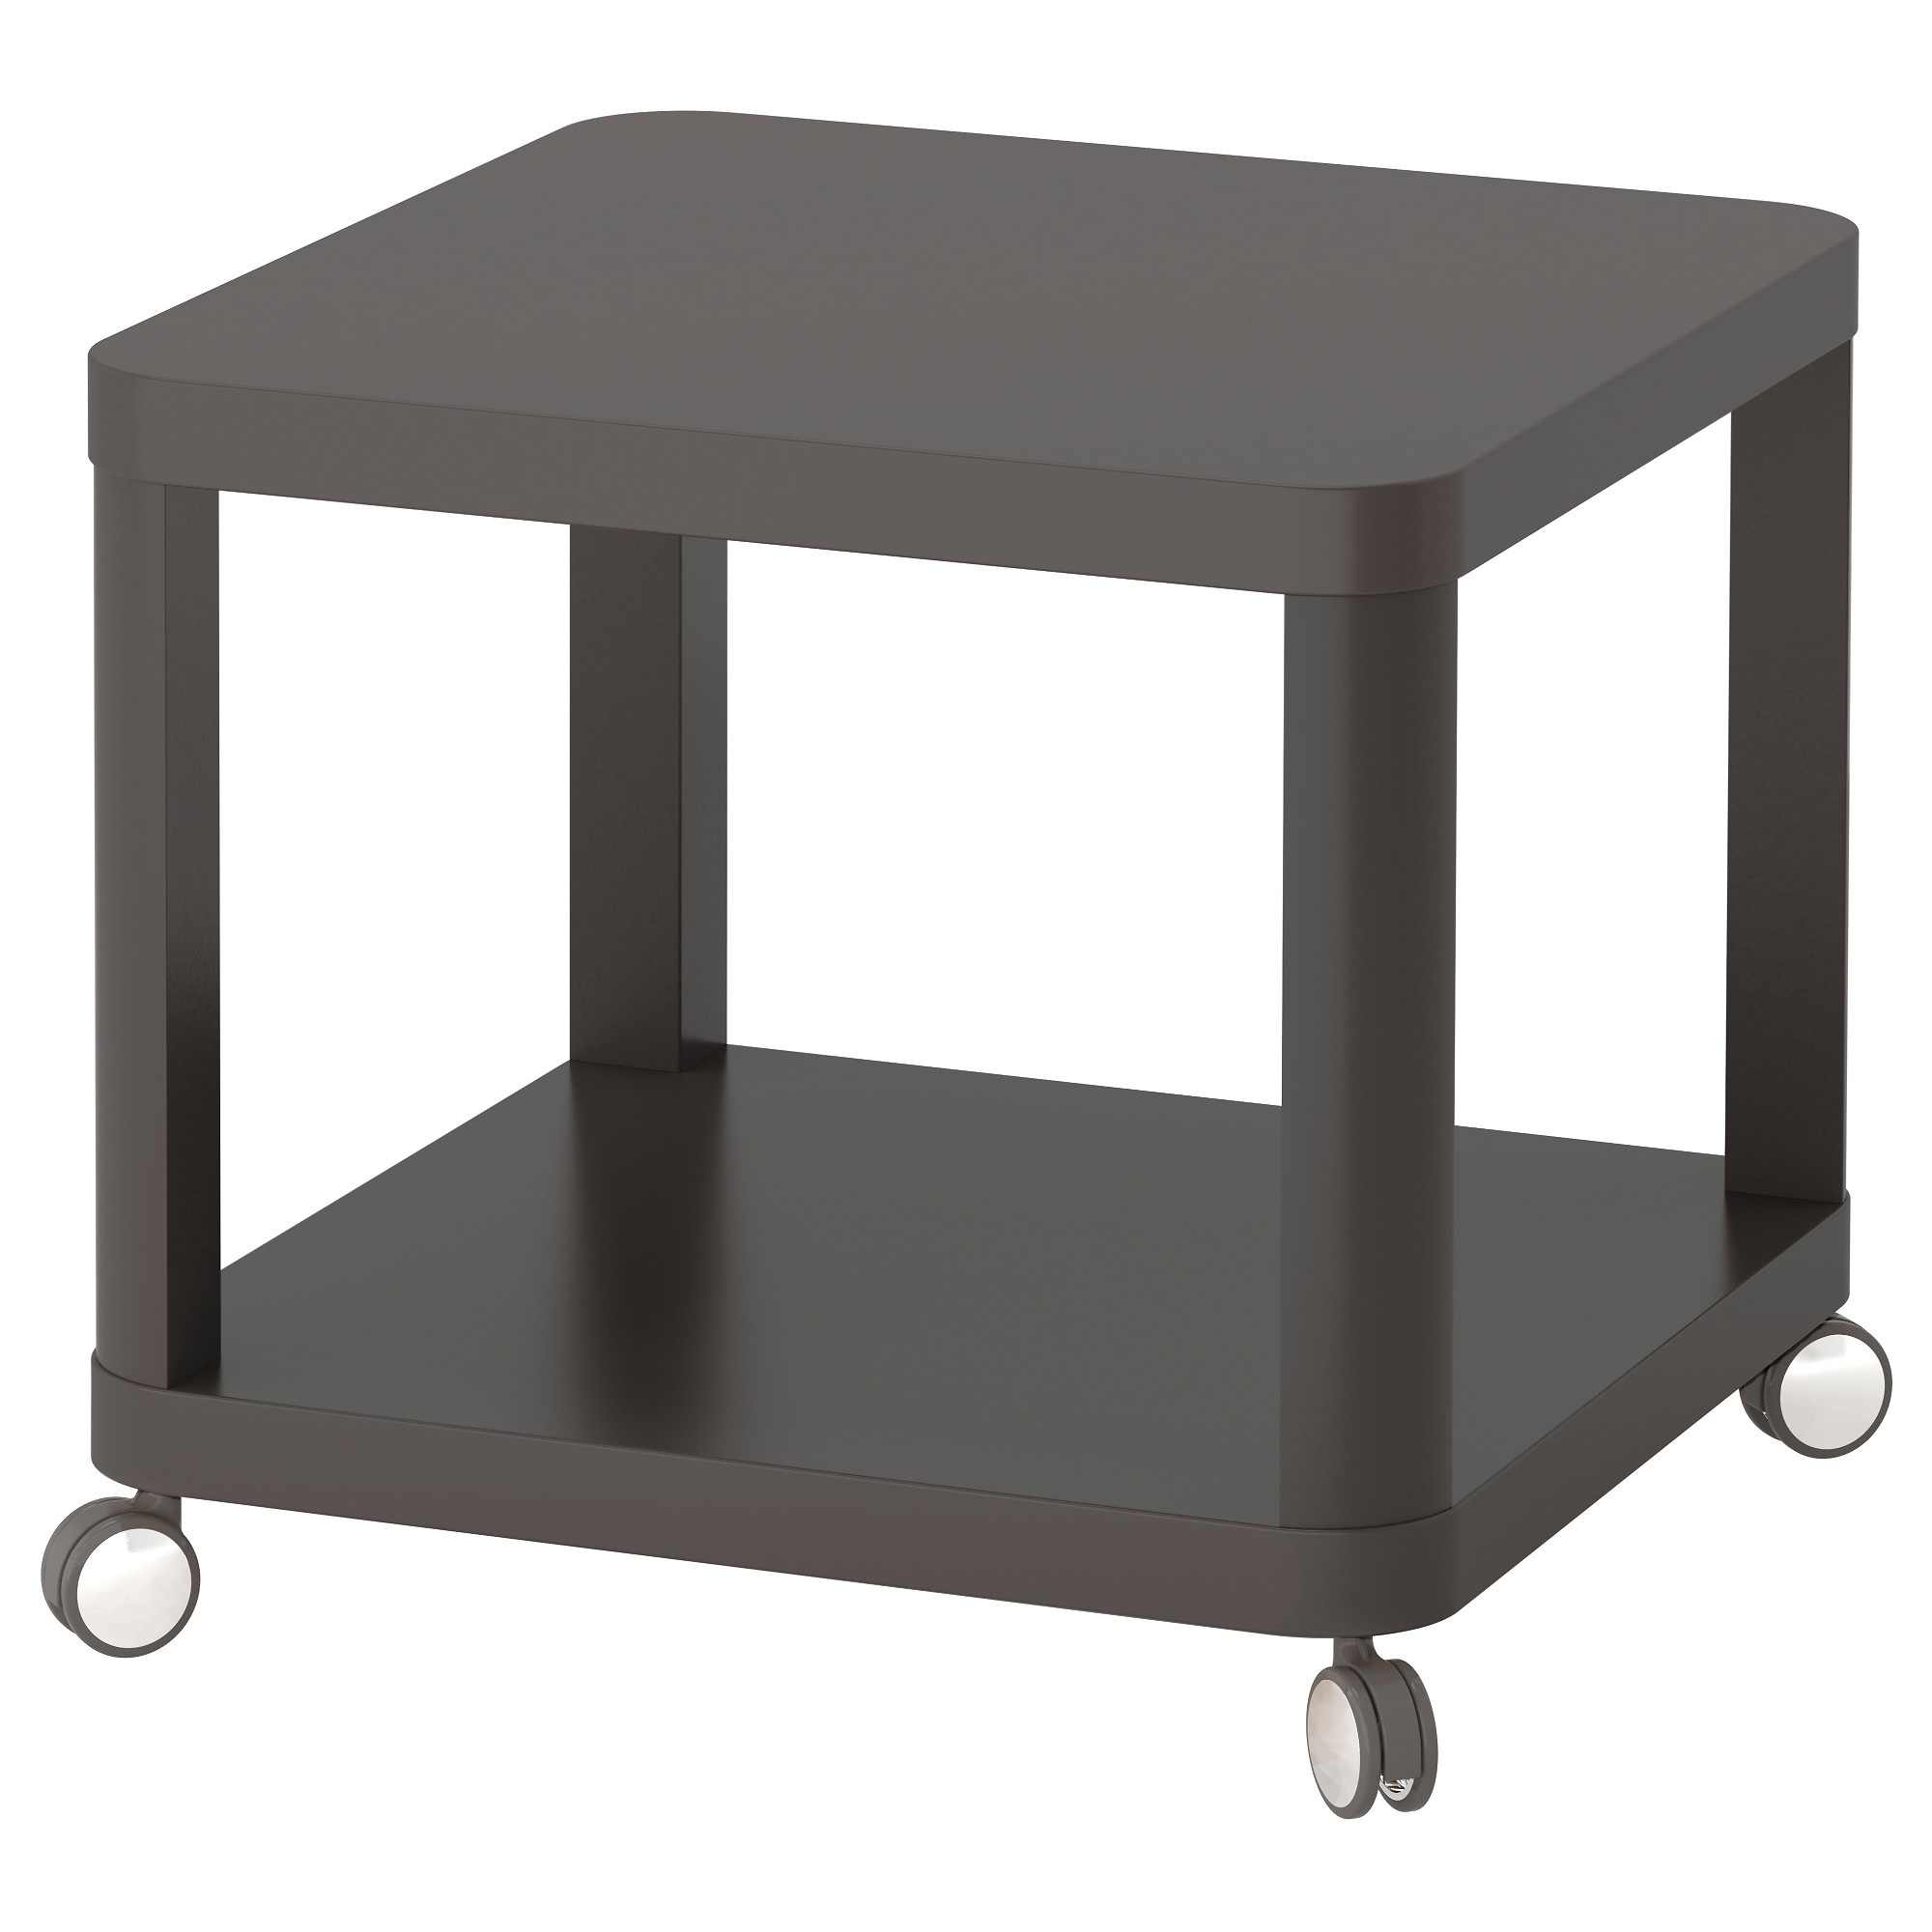 Ikea leksvik coffee table - Tingby Side Table On Casters Gray Length 19 5 8 Width